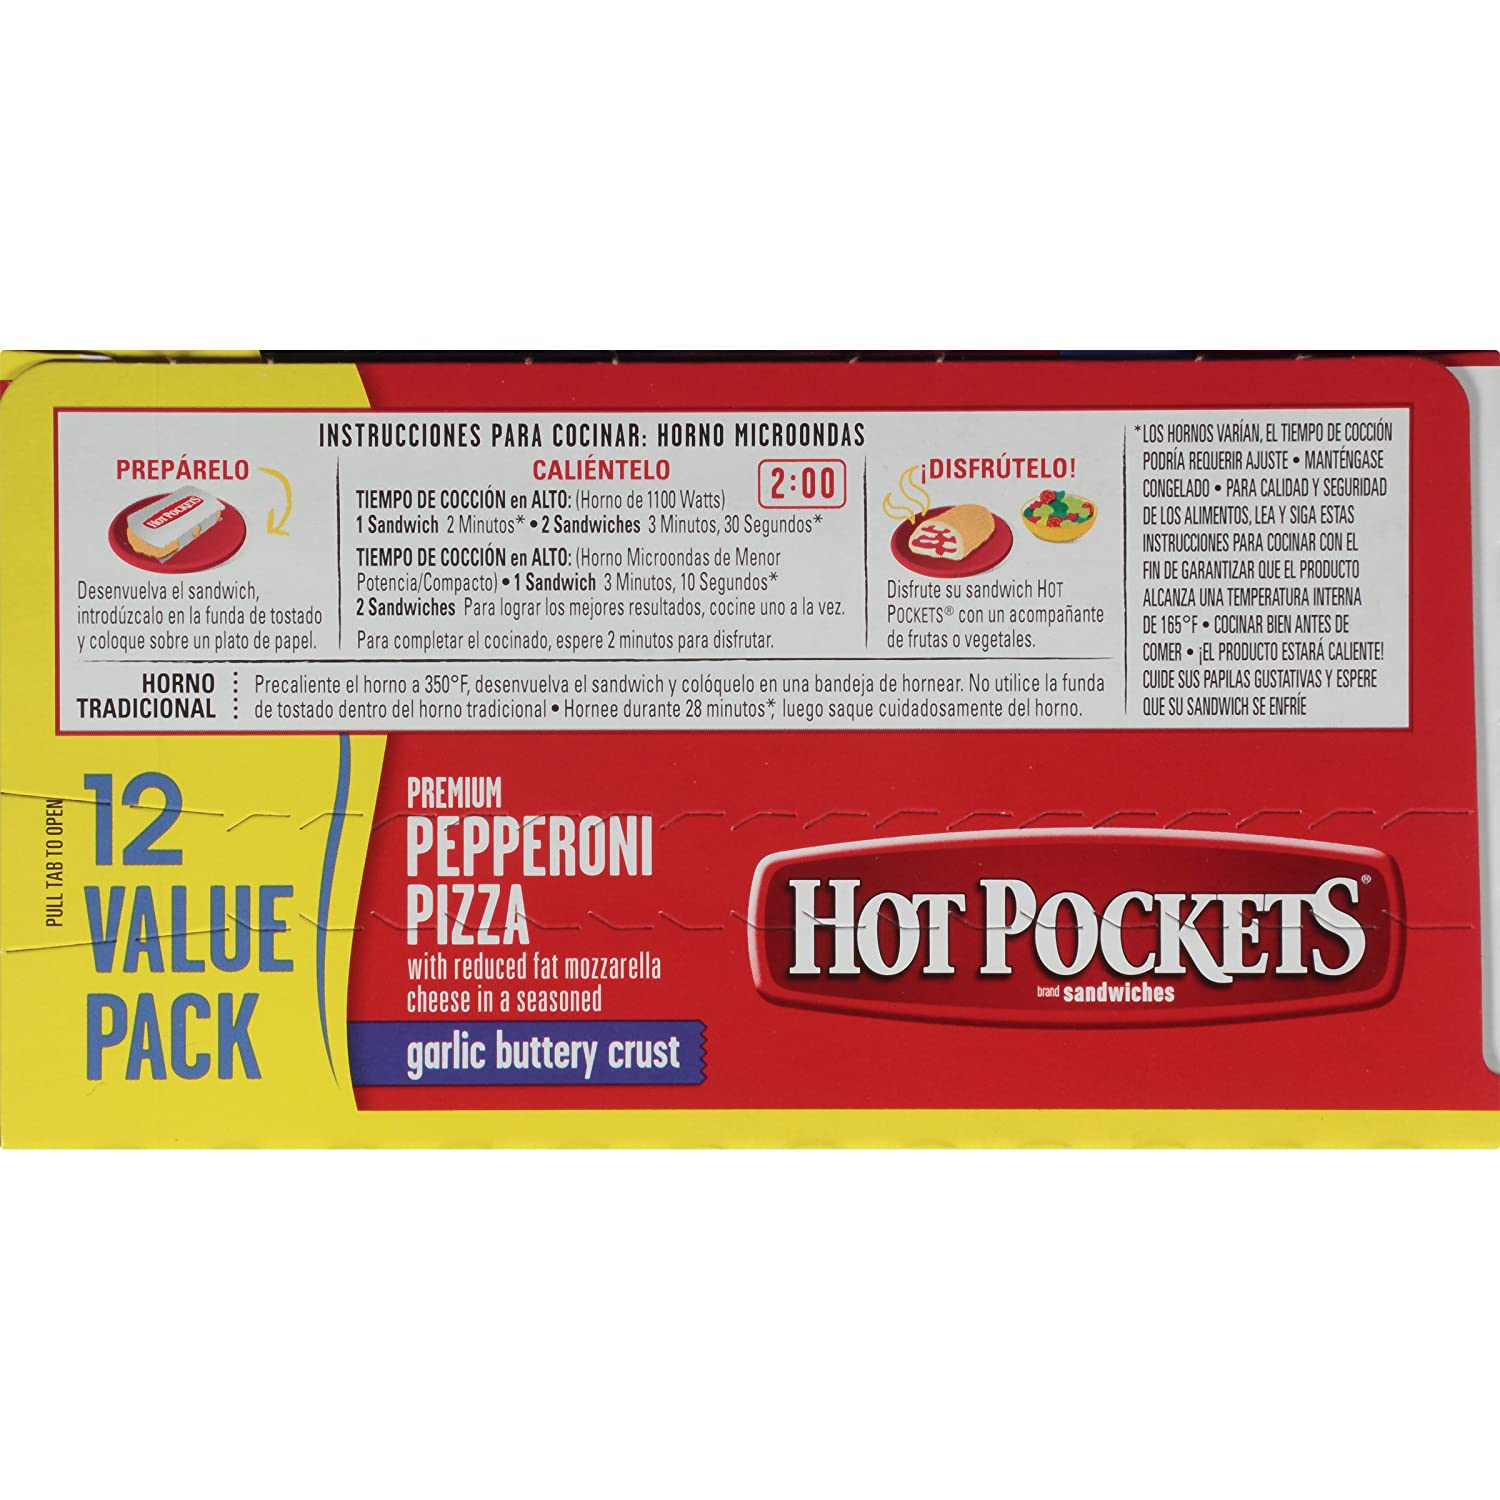 Hot Pockets, Crispy Crust Pepperoni Pizza, 12 sandwiches, 54 oz (Frozen): Amazon.com: Grocery & Gourmet Food